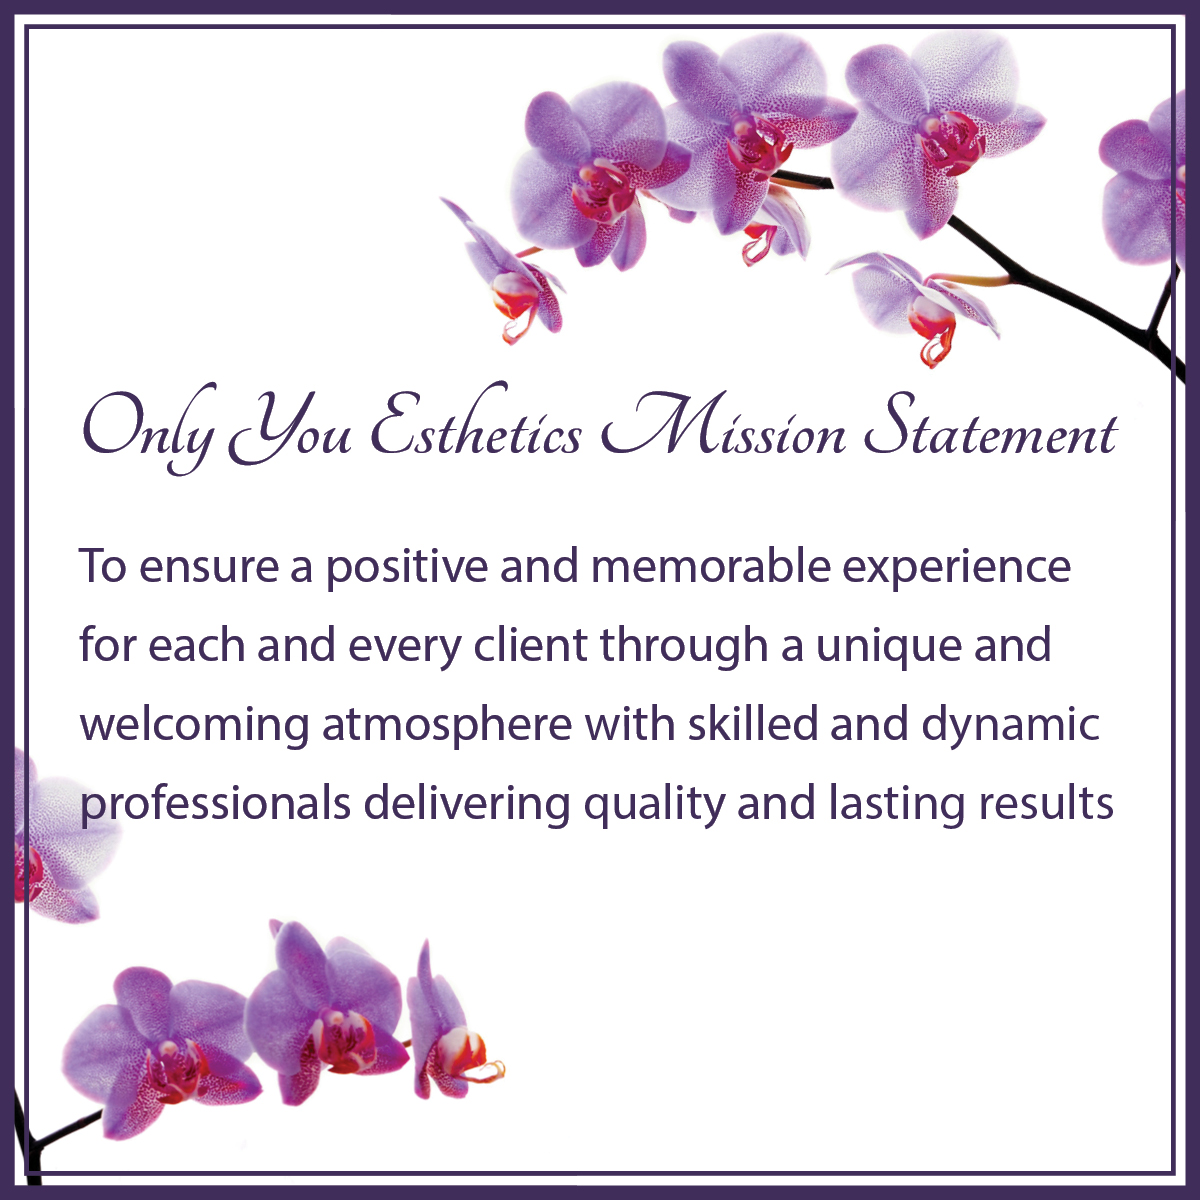 mission statement only you esthetics mission statement only you esthetics >